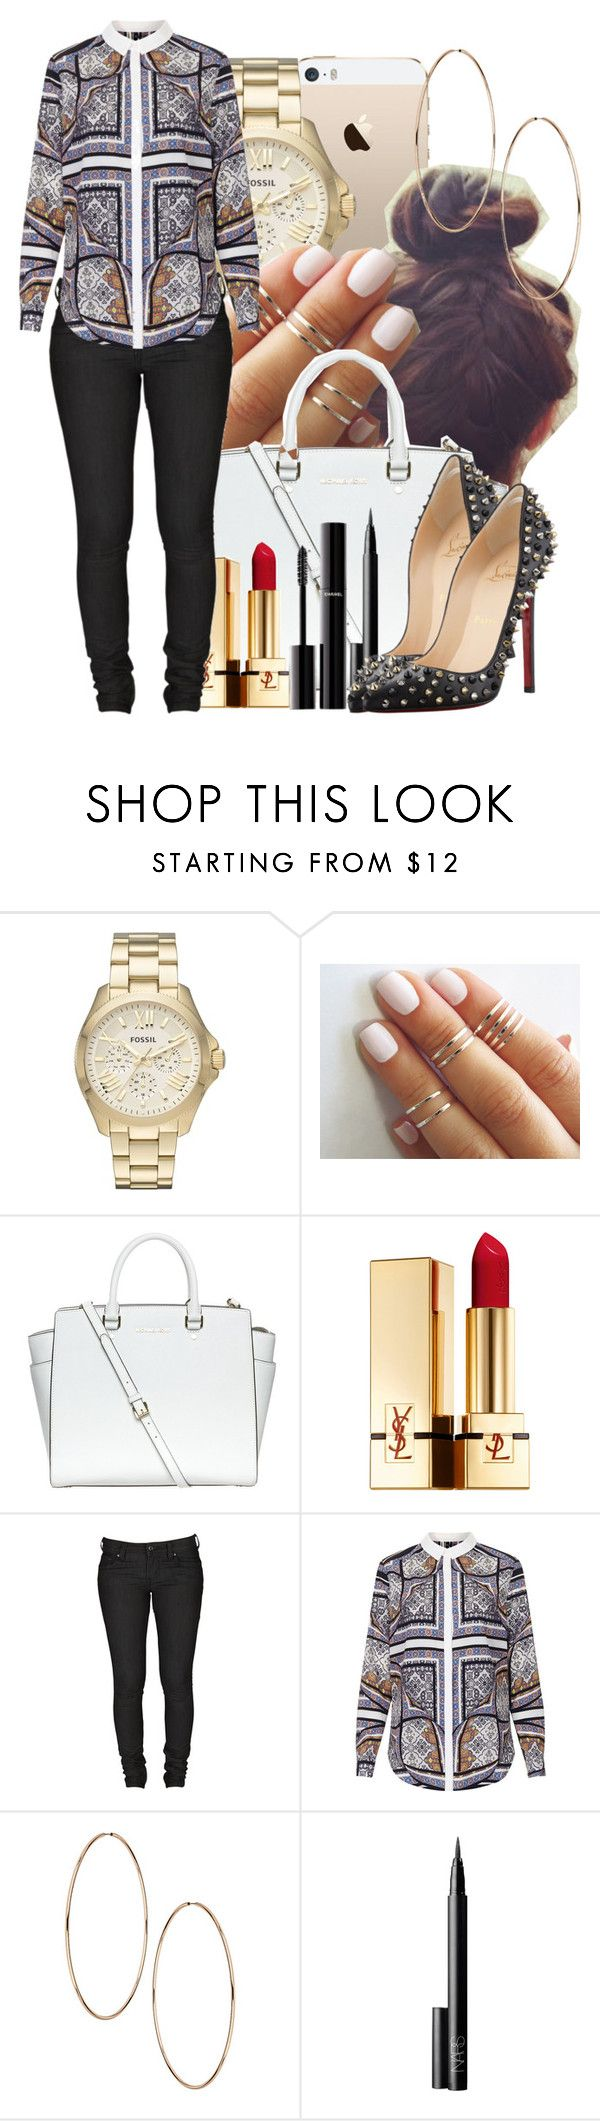 """""""17 June, 2014"""" by jamilah-rochon ❤ liked on Polyvore featuring FOSSIL, MICHAEL Michael Kors, Yves Saint Laurent, Levi's, Topshop, NARS Cosmetics, Christian Louboutin and Chanel"""